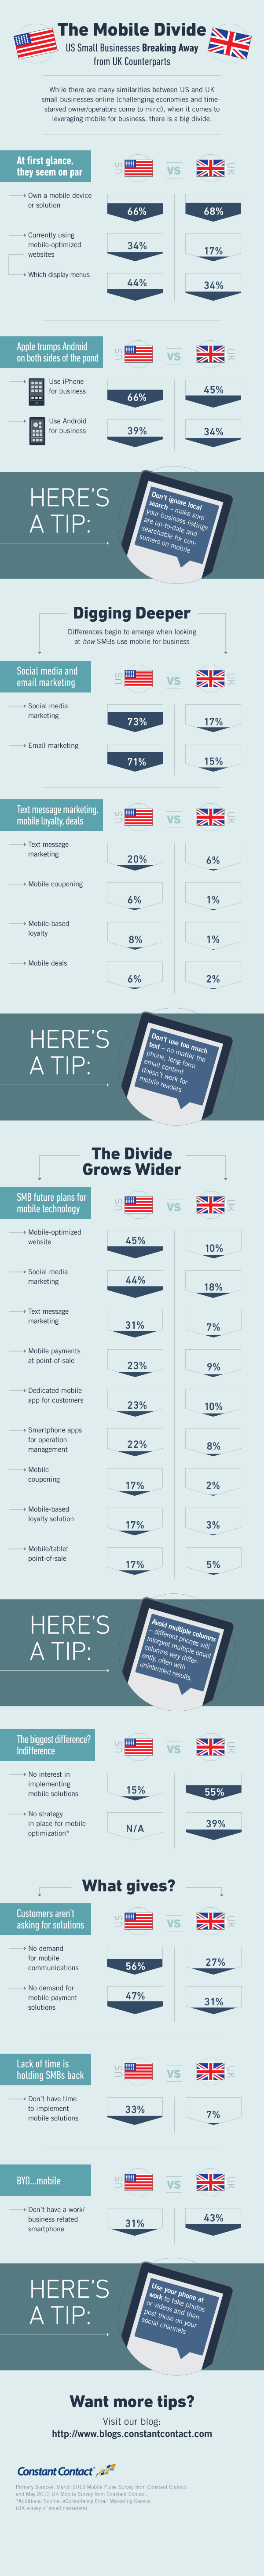 The UK and US mobile marketing shopping divide for small businesses